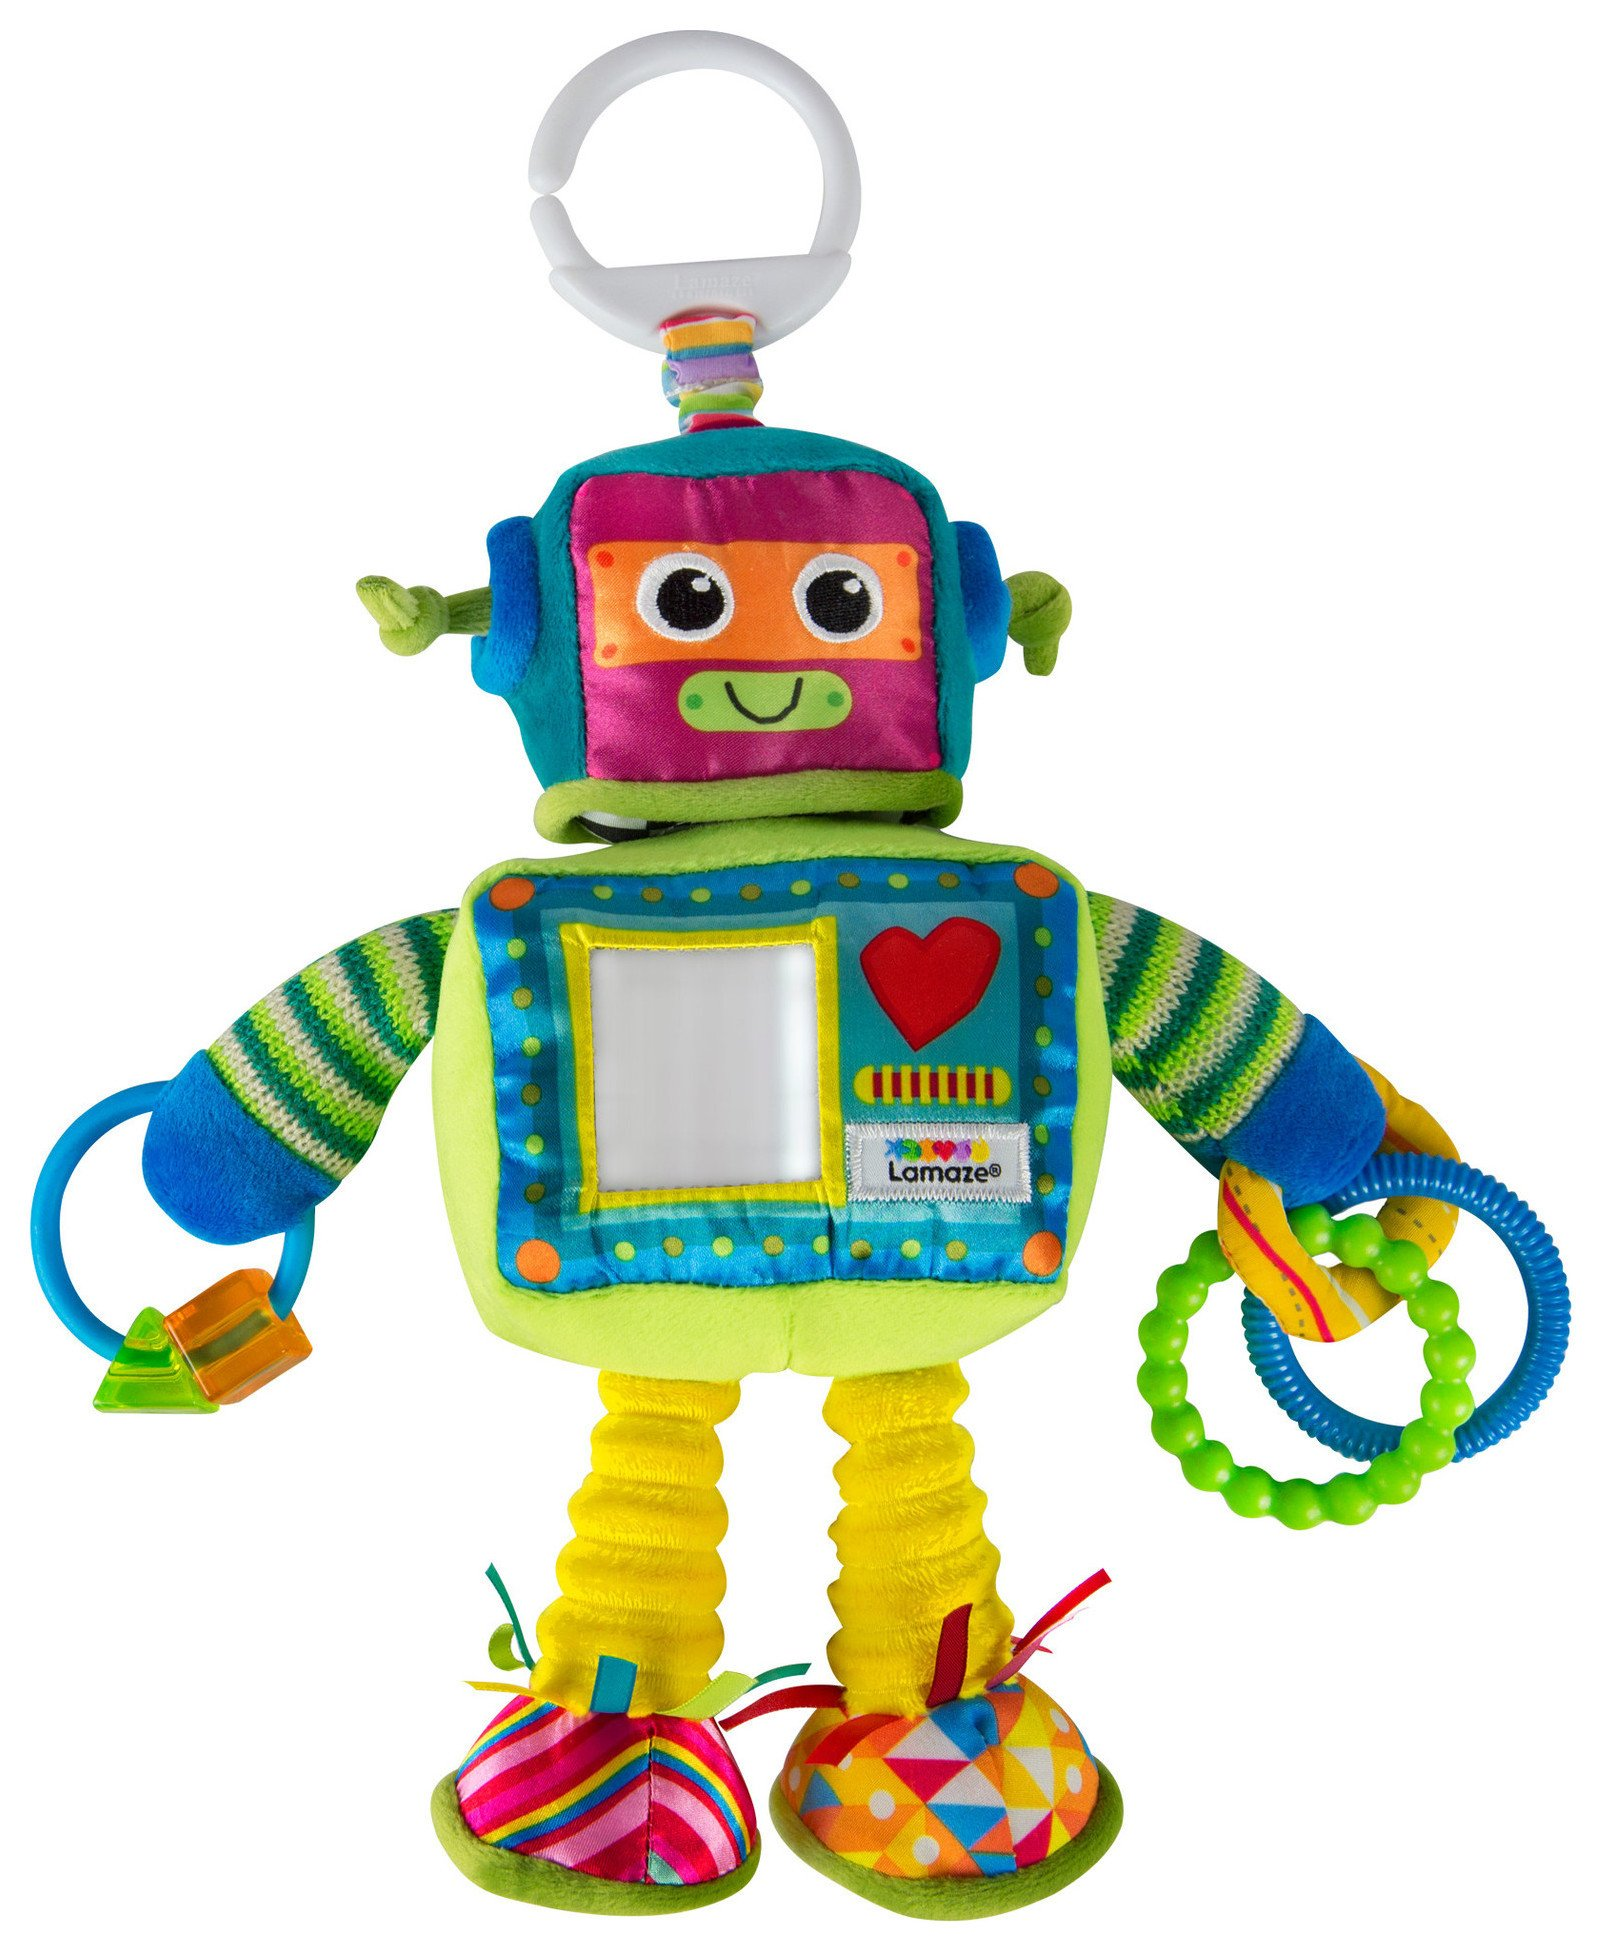 Image of Lamaze Rusty the Robot On the Go Toy.